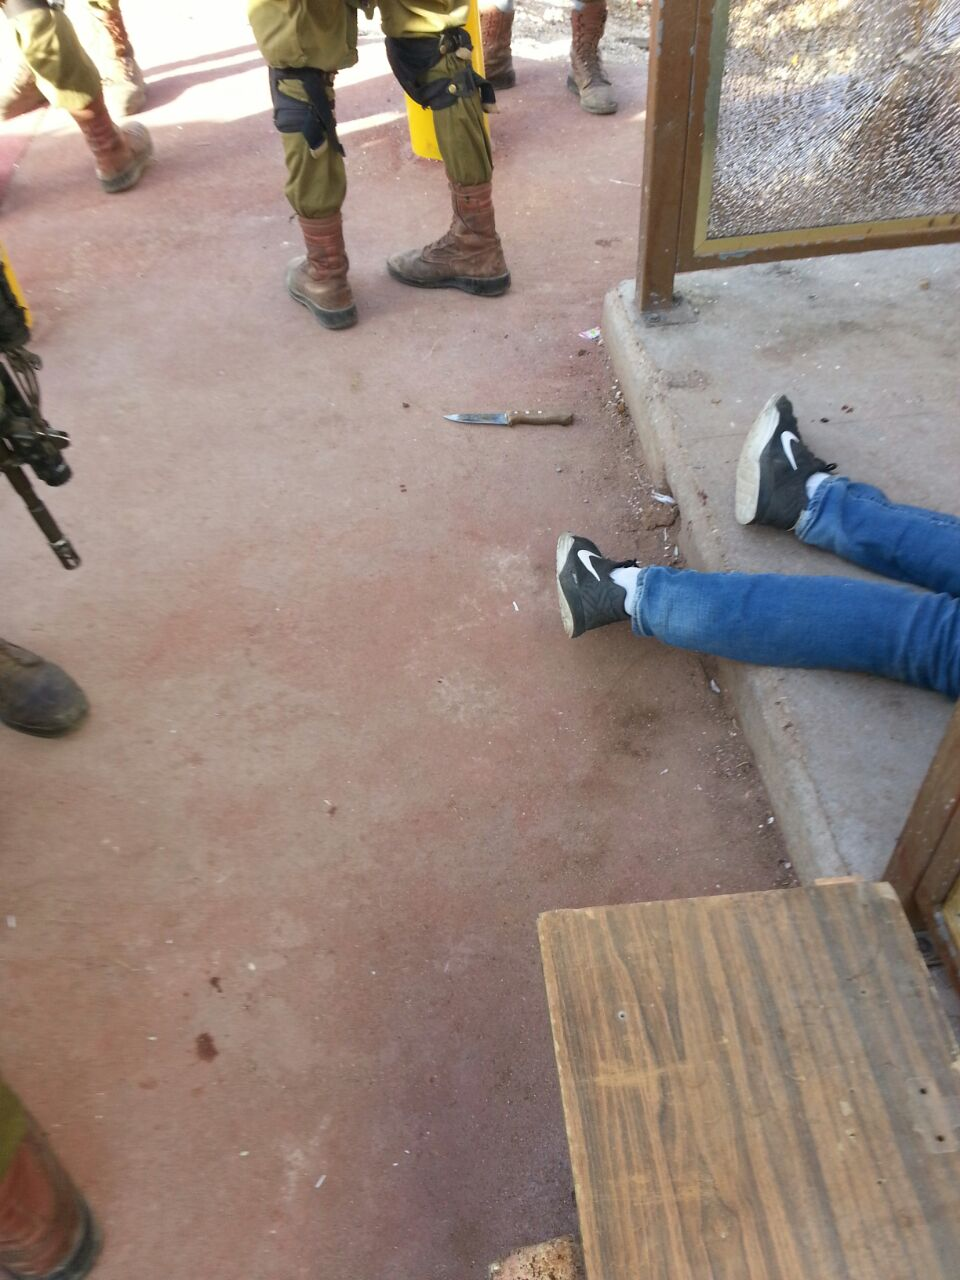 Shabbos Afternoon Stabbing Terror Attack- Terrorist Eliminated